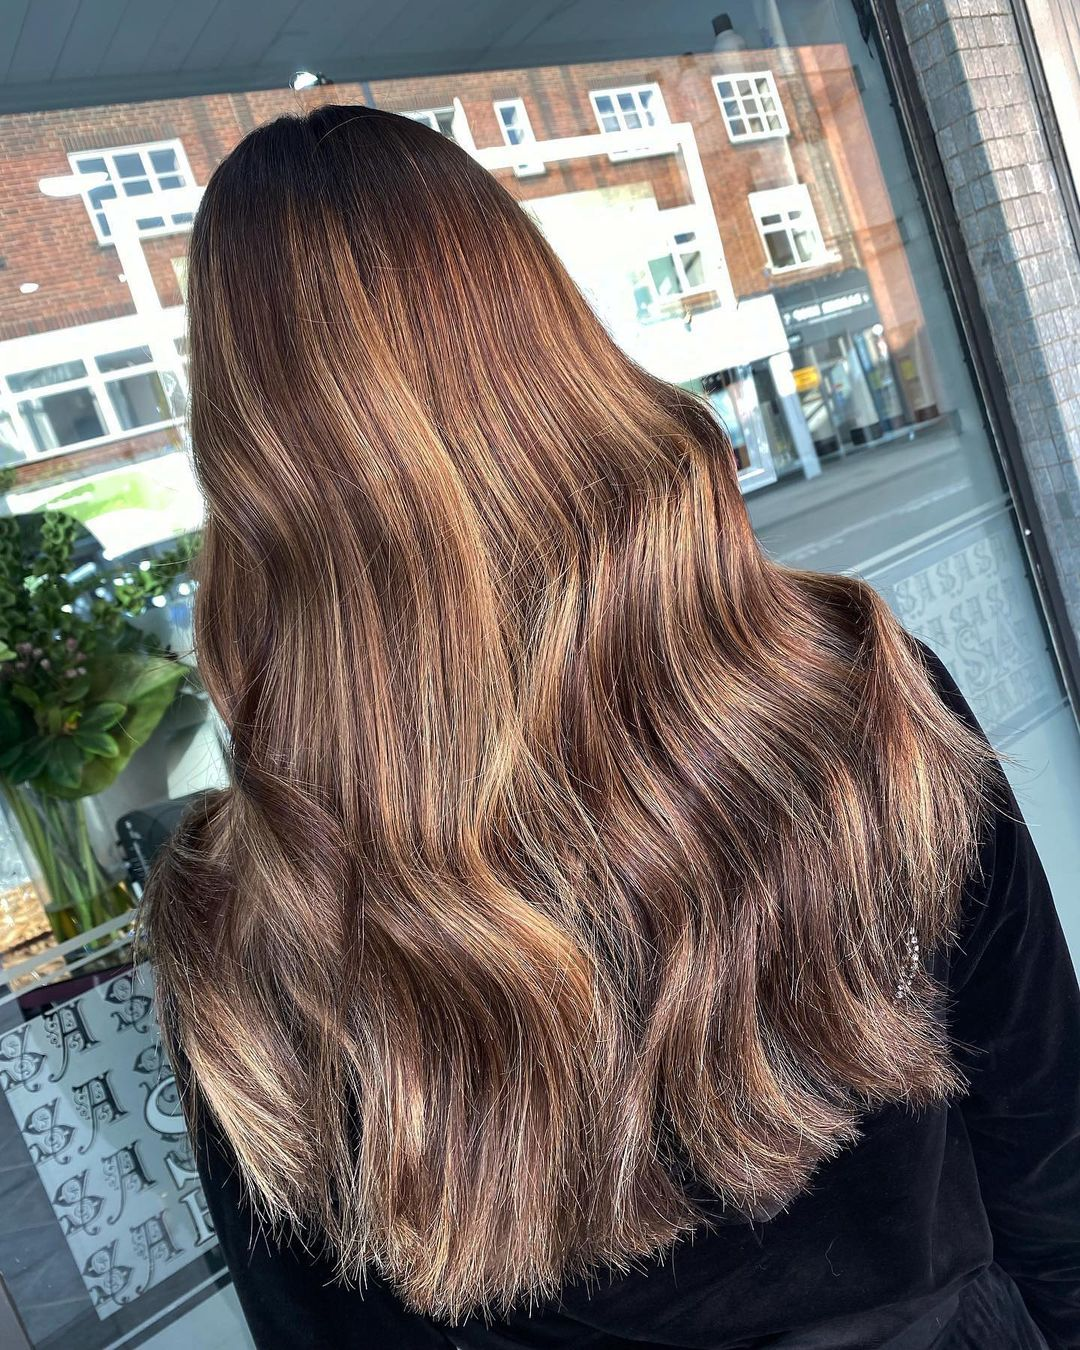 Three Balayage Blends You're Going To Love